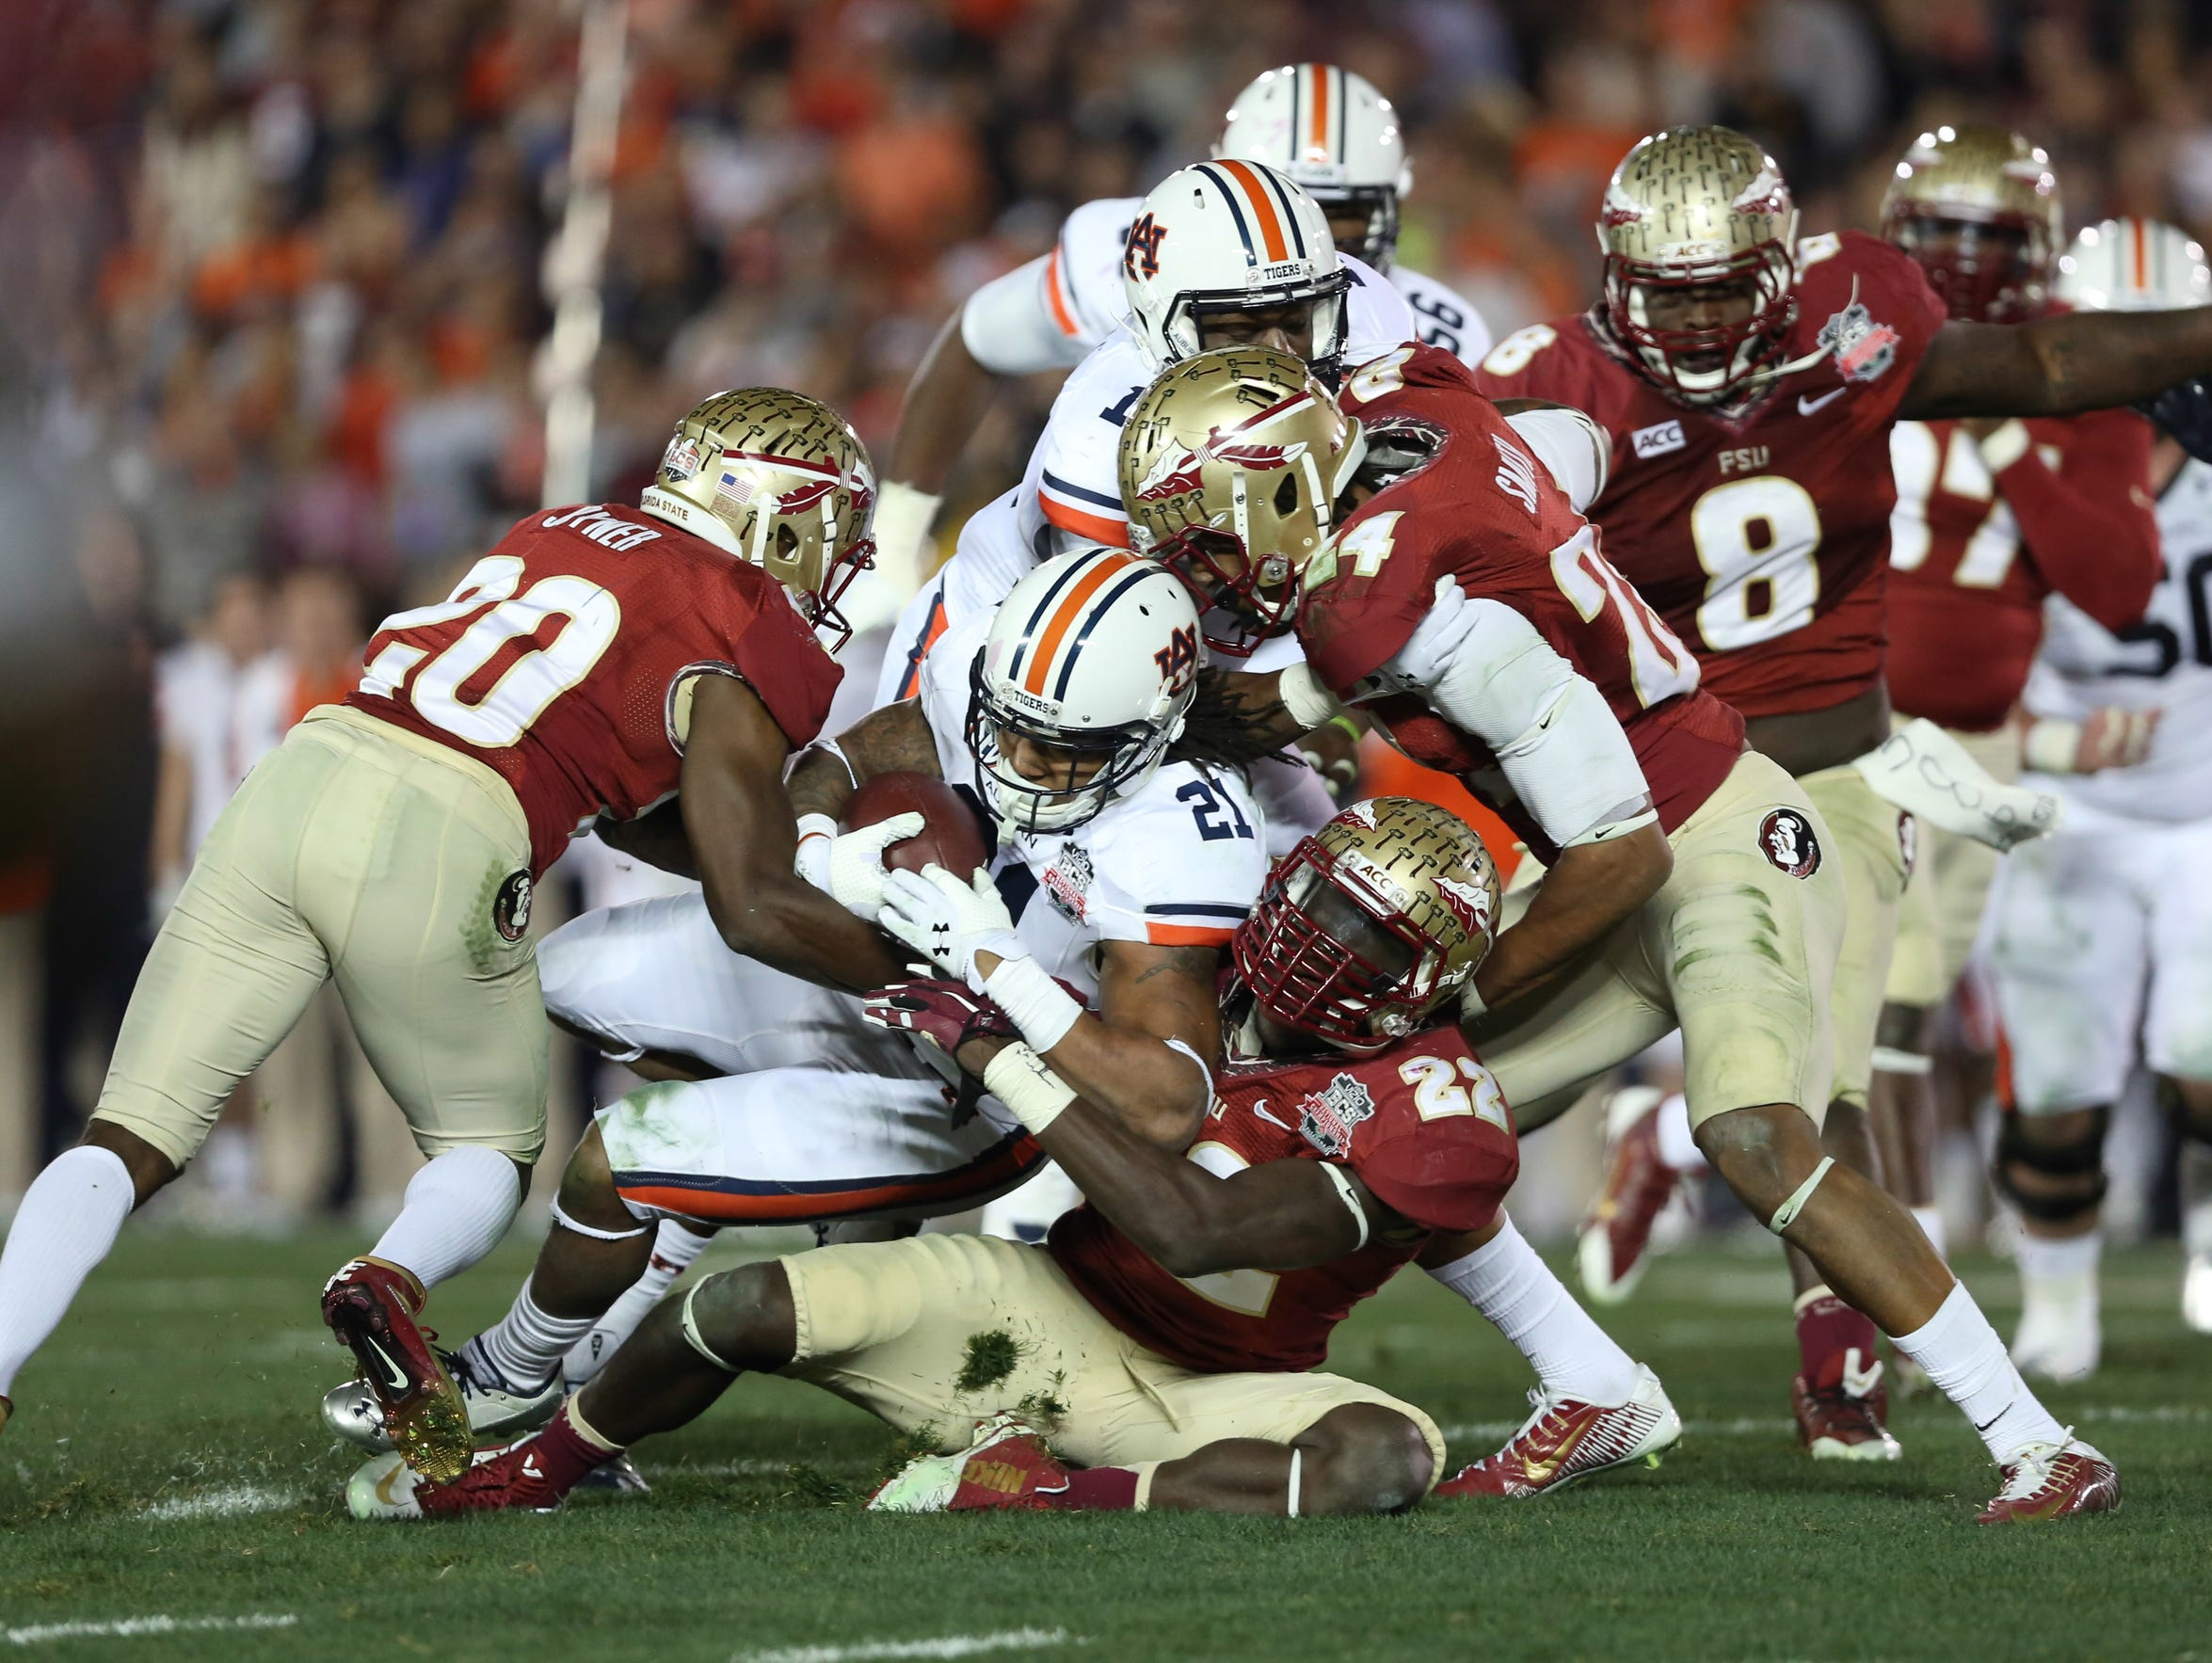 FSU's defense makes a stop during the 2013 BCS National